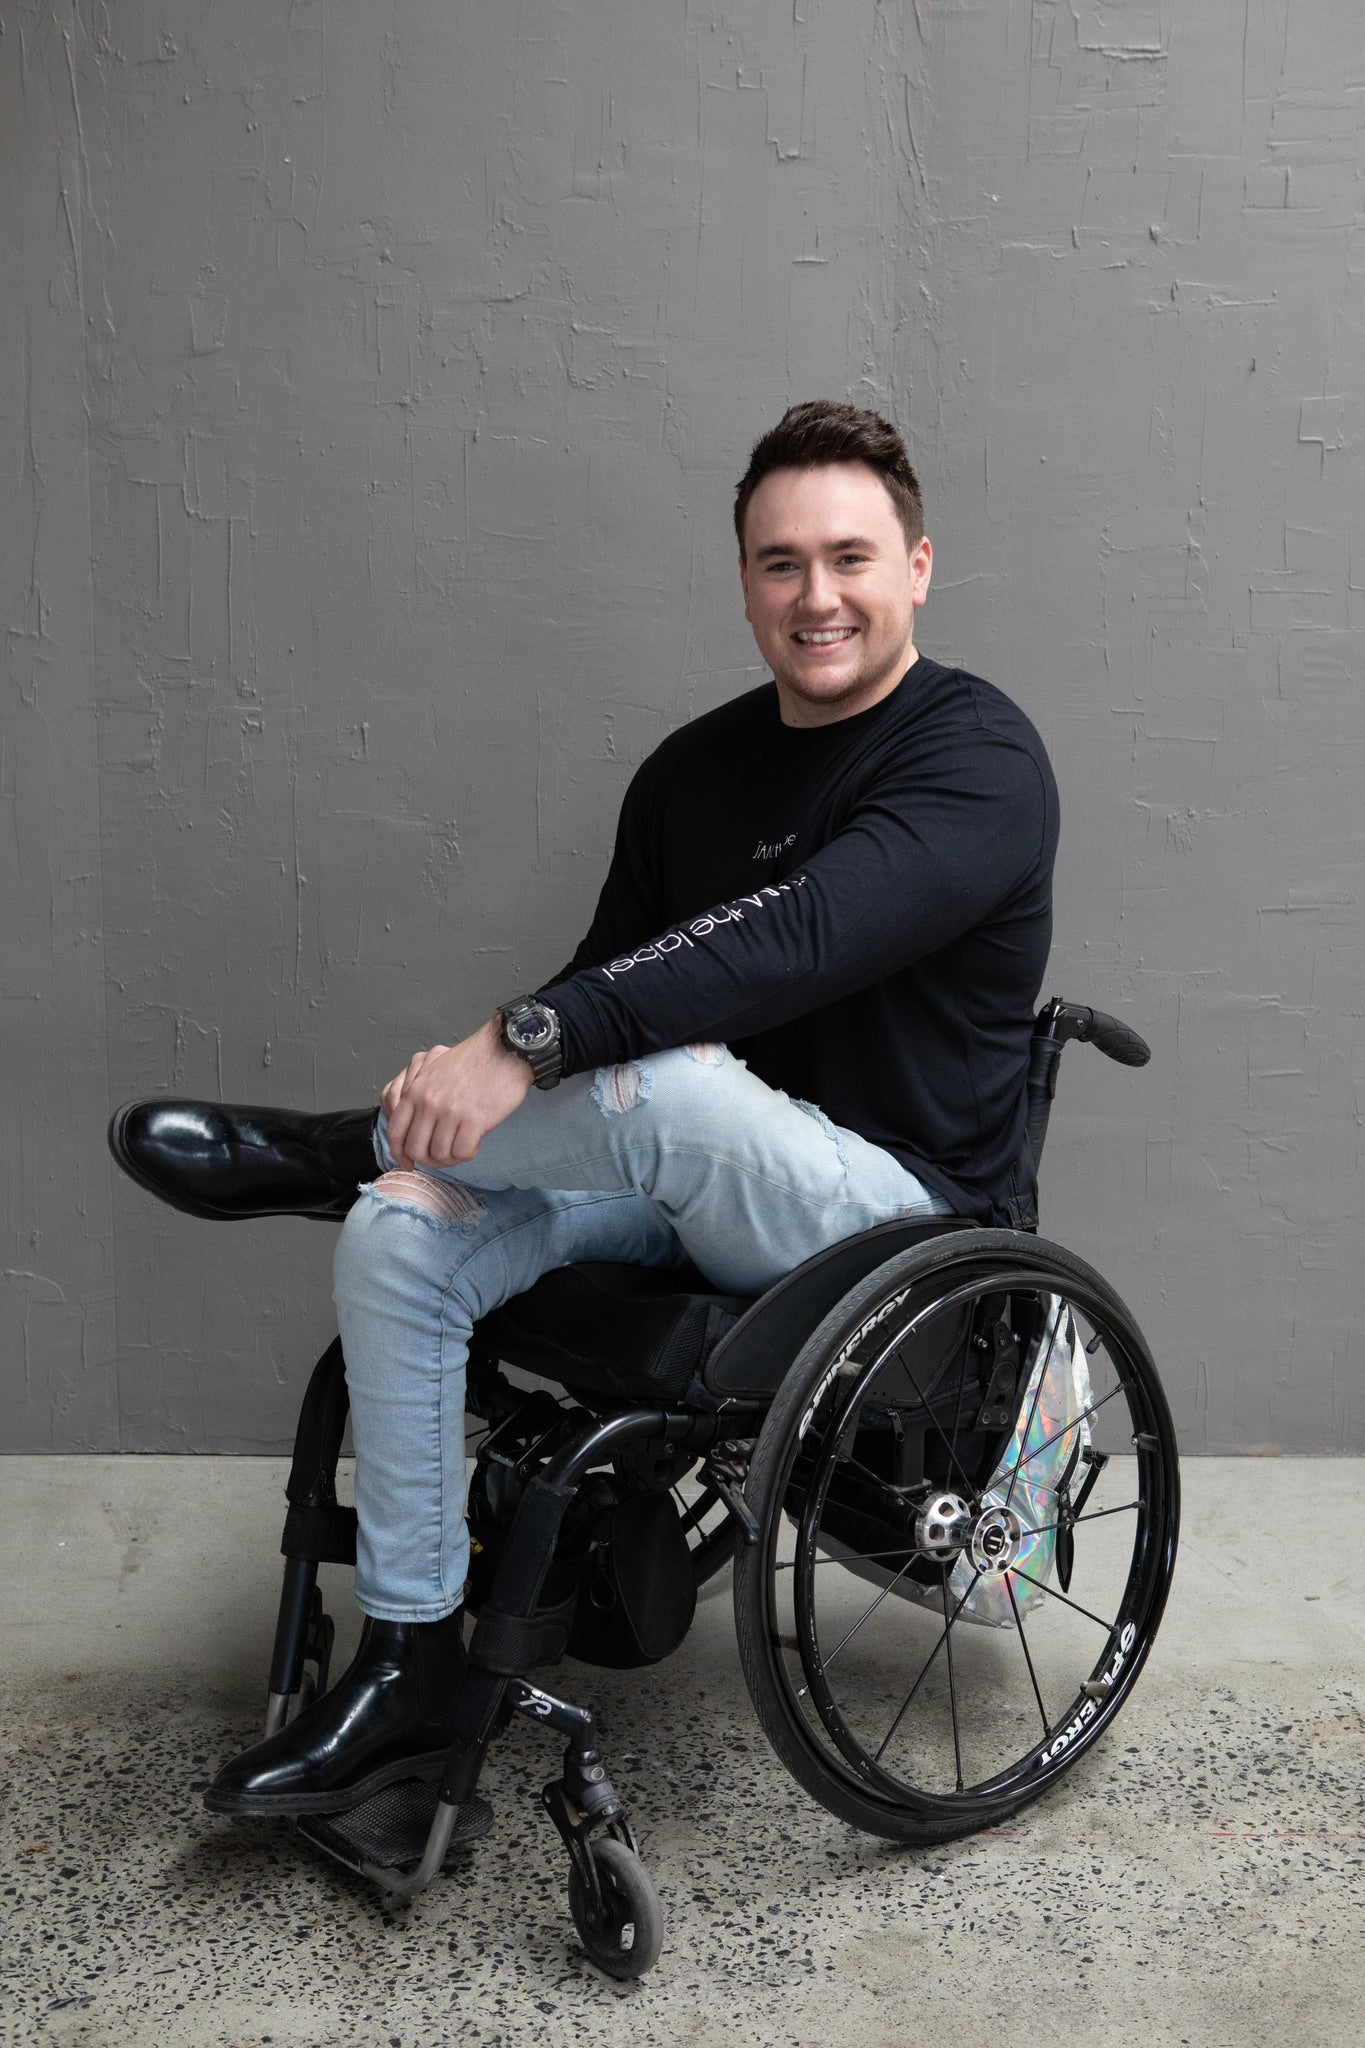 Jason, a white man with short brown hair, is sitting in his wheelchair and smiling. He is wearing a black long sleeve with the words